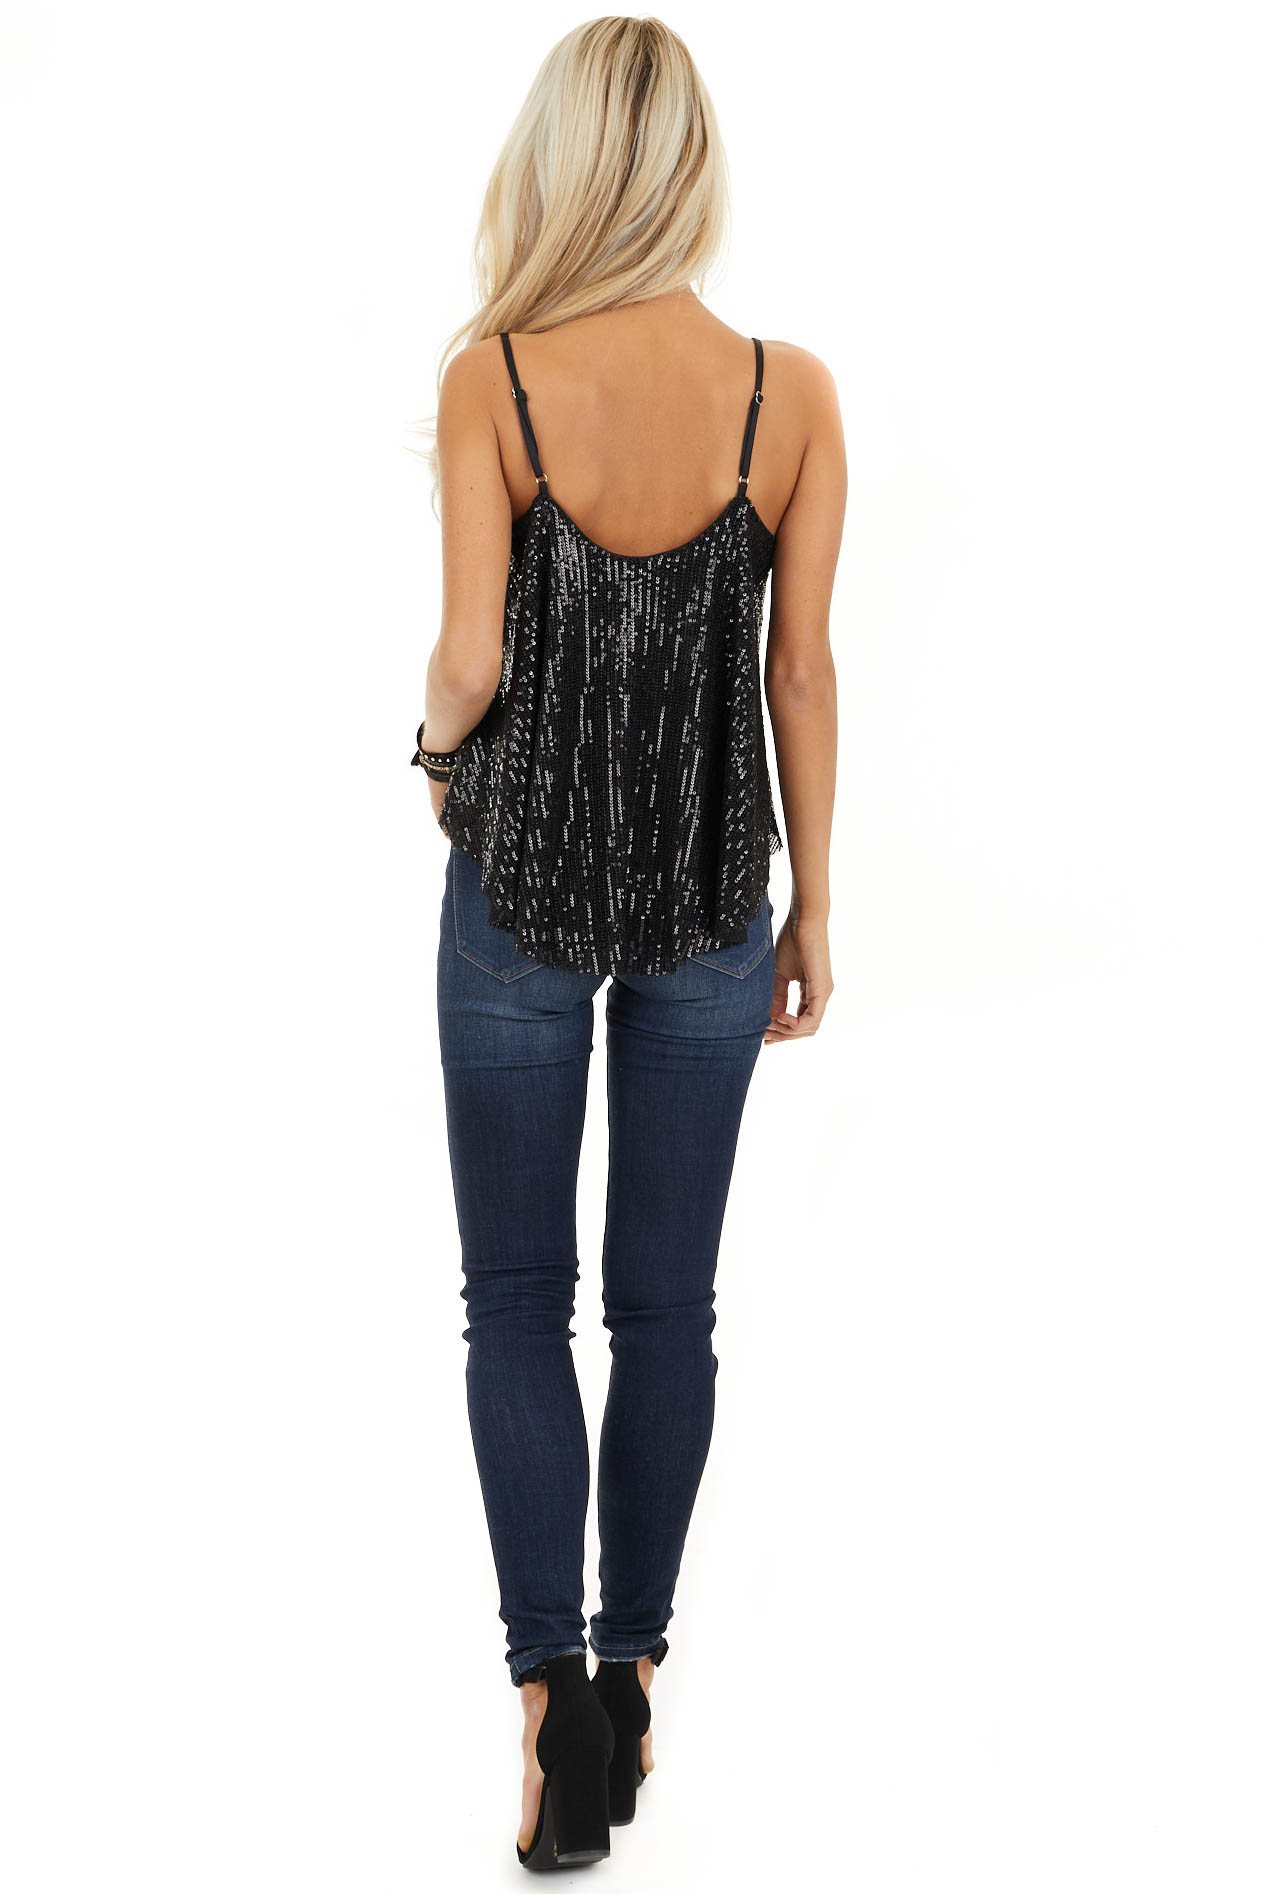 Black Sequin Cami Top with Adjustable Spaghetti Straps back full body